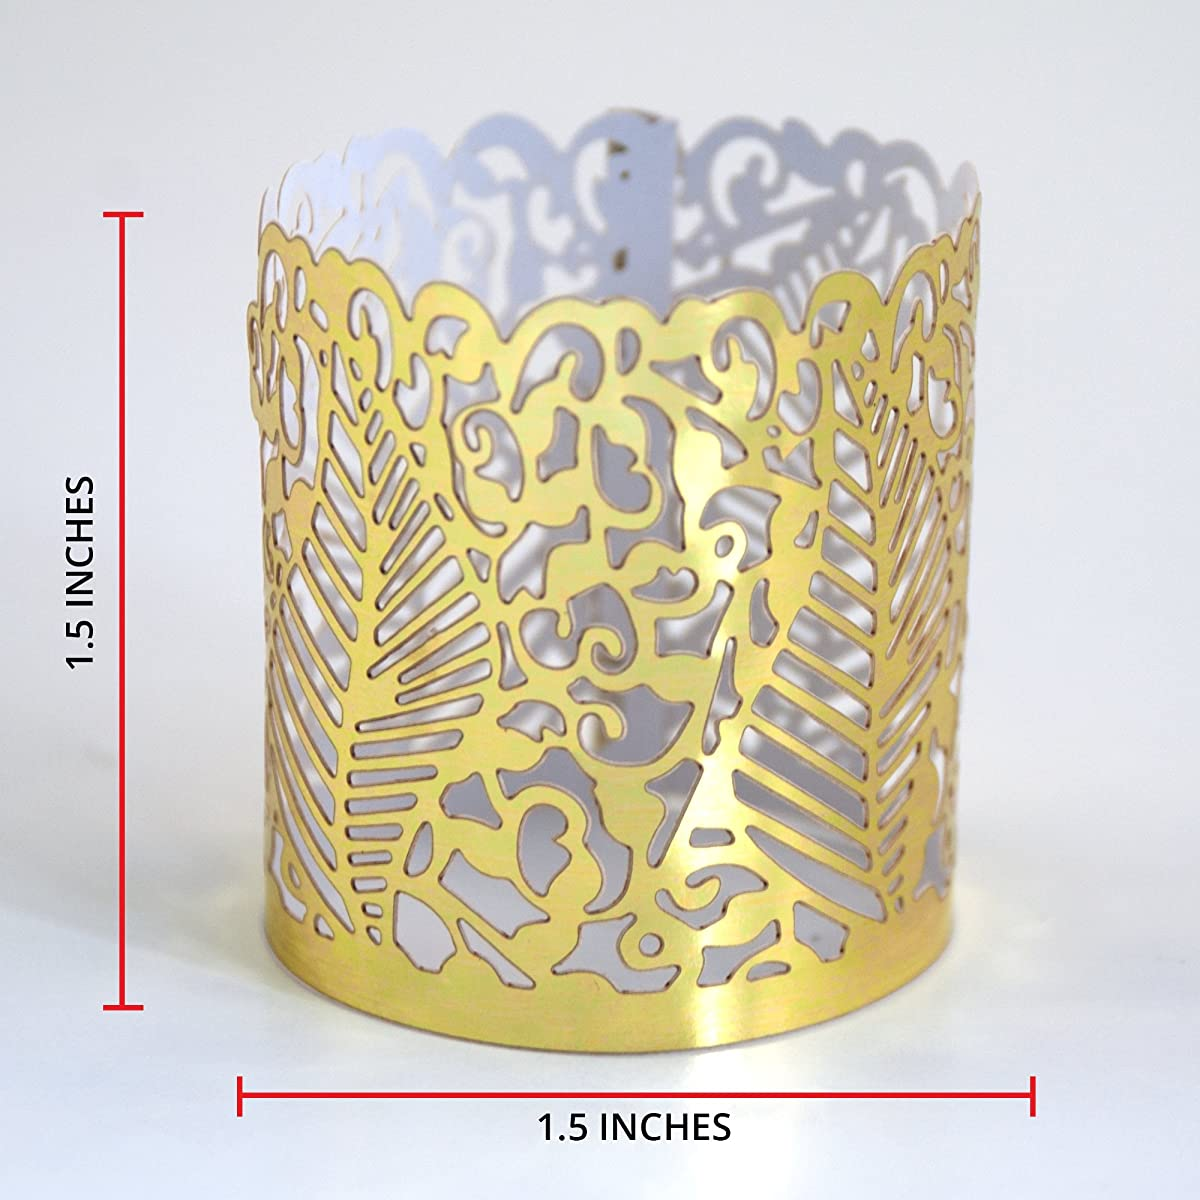 FLAMELESS TEA LIGHT VOTIVE WRAPS- 48 Gold colored laser cut decorative wraps for Frux Home and Yard Flickering LED Battery Tealight Candles (not included)